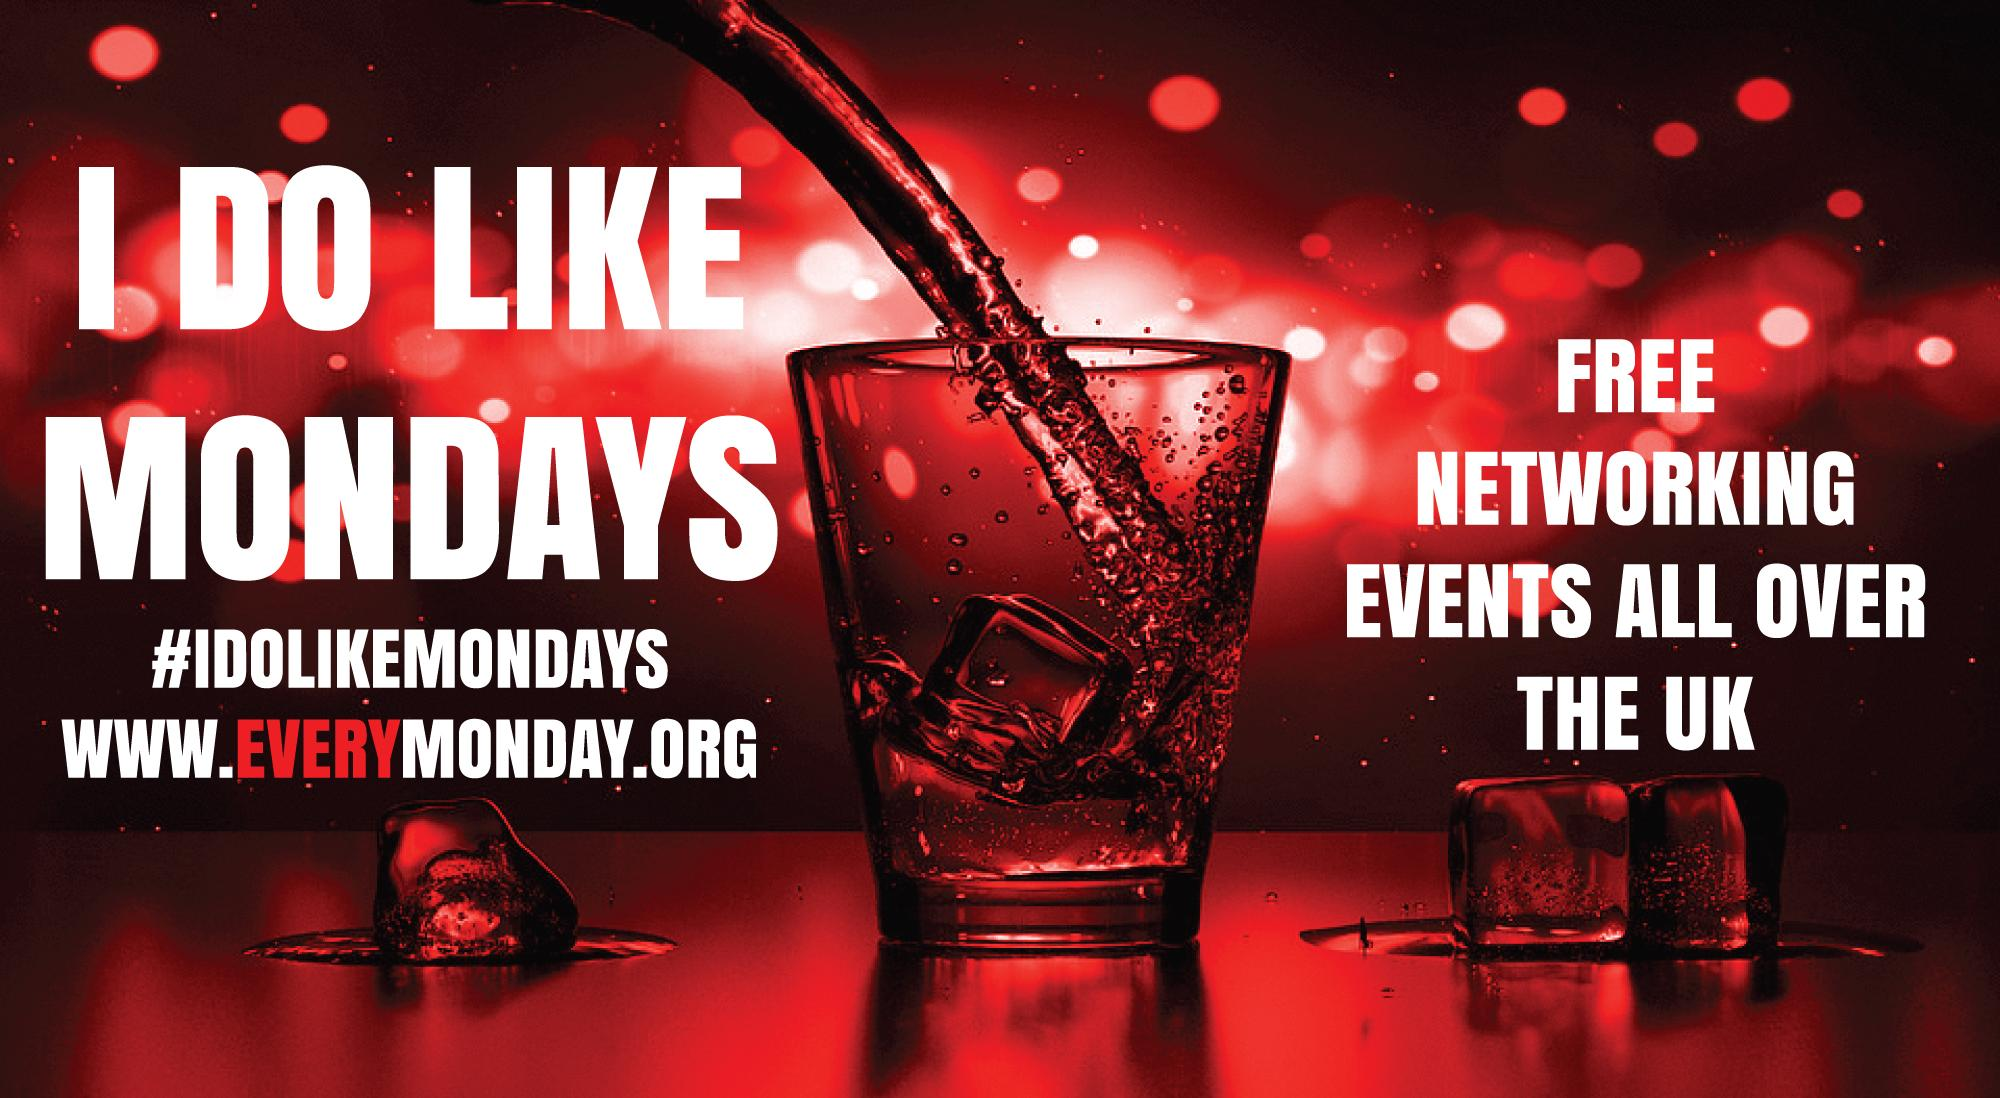 I DO LIKE MONDAYS! Free networking event in Chesterfield